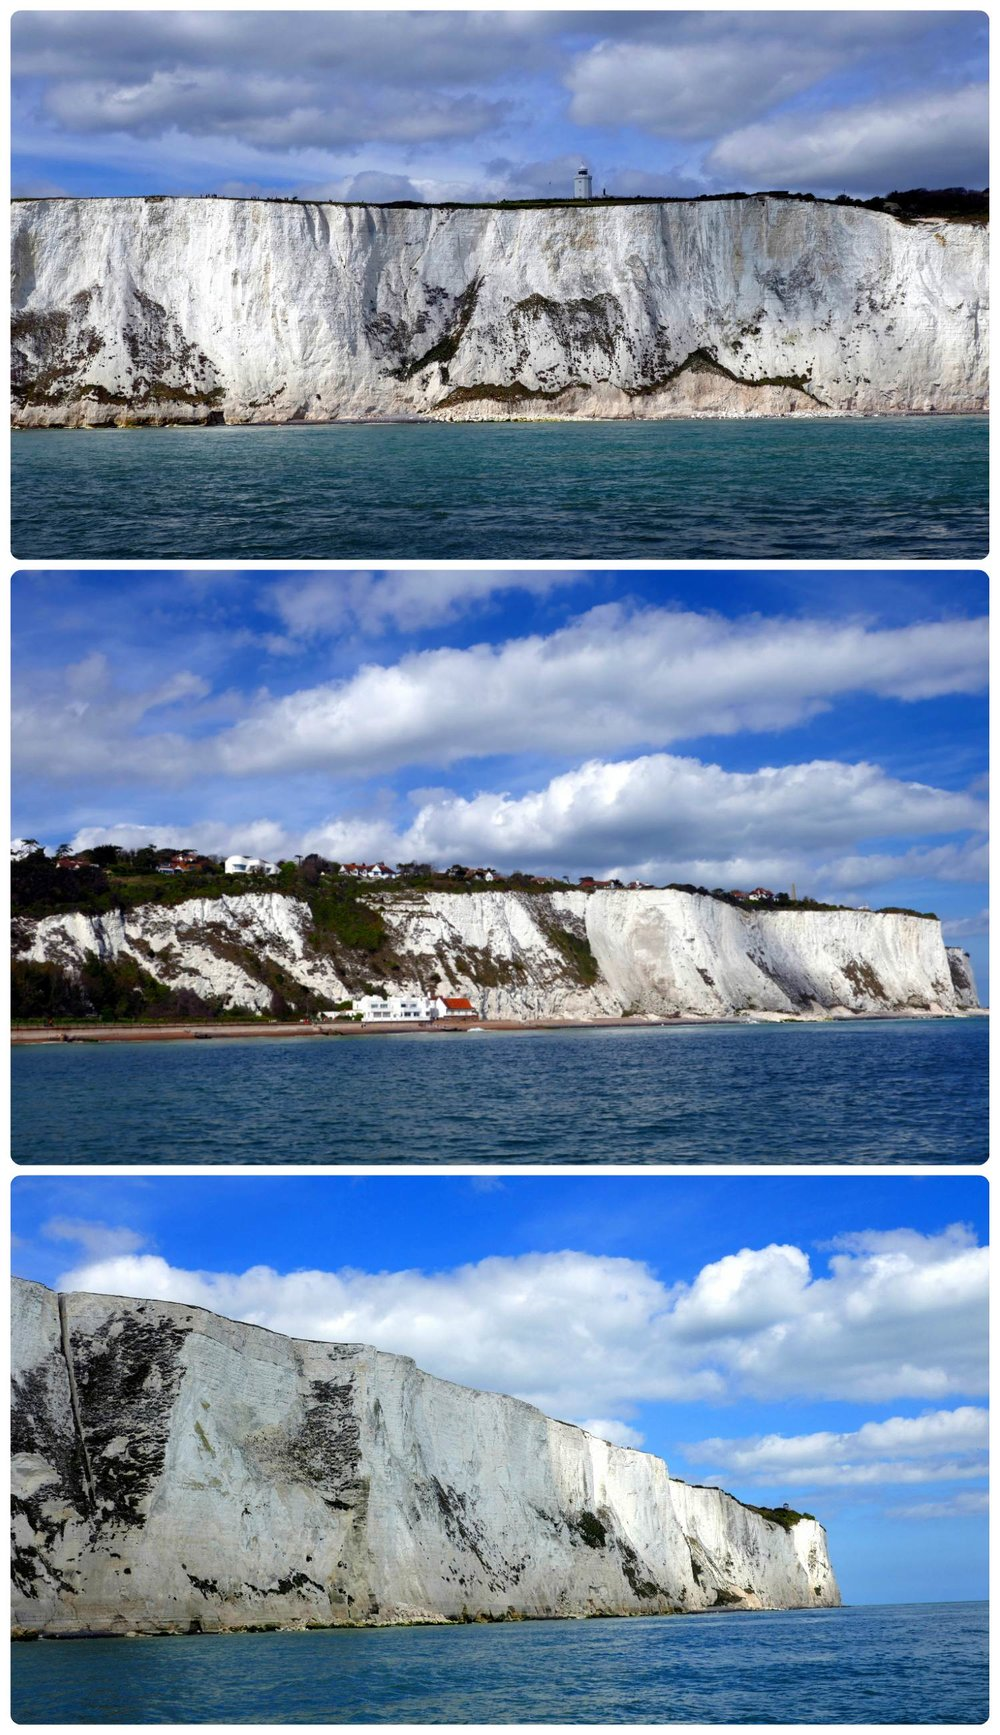 The views of the cliffs were amazing from the speed boat tour we took.